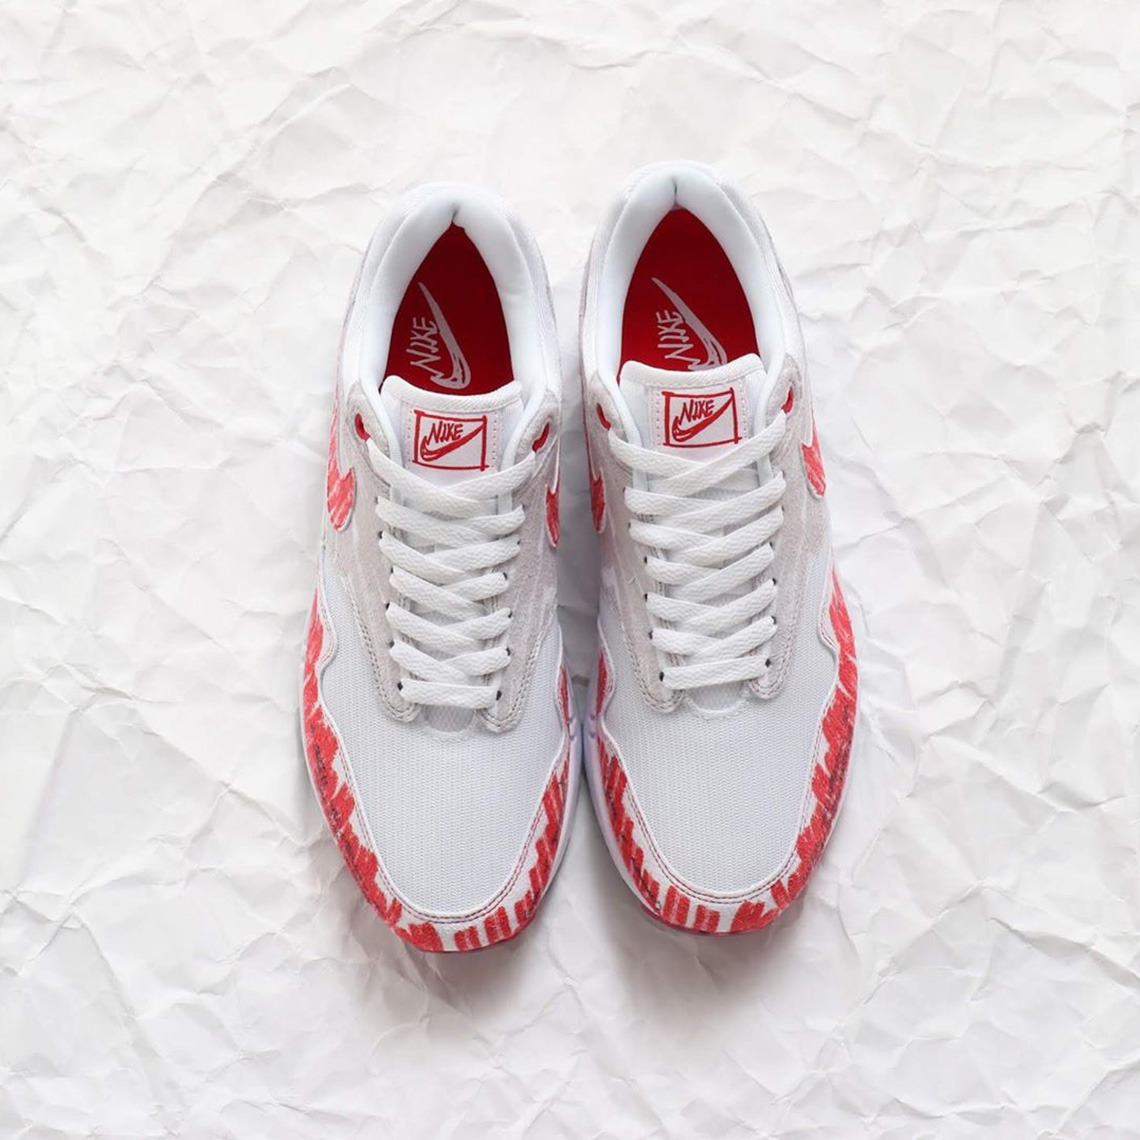 Nike-Air-Max-1-Sketch-to-Shelf-CJ4286-101-1-WEARESTRAP